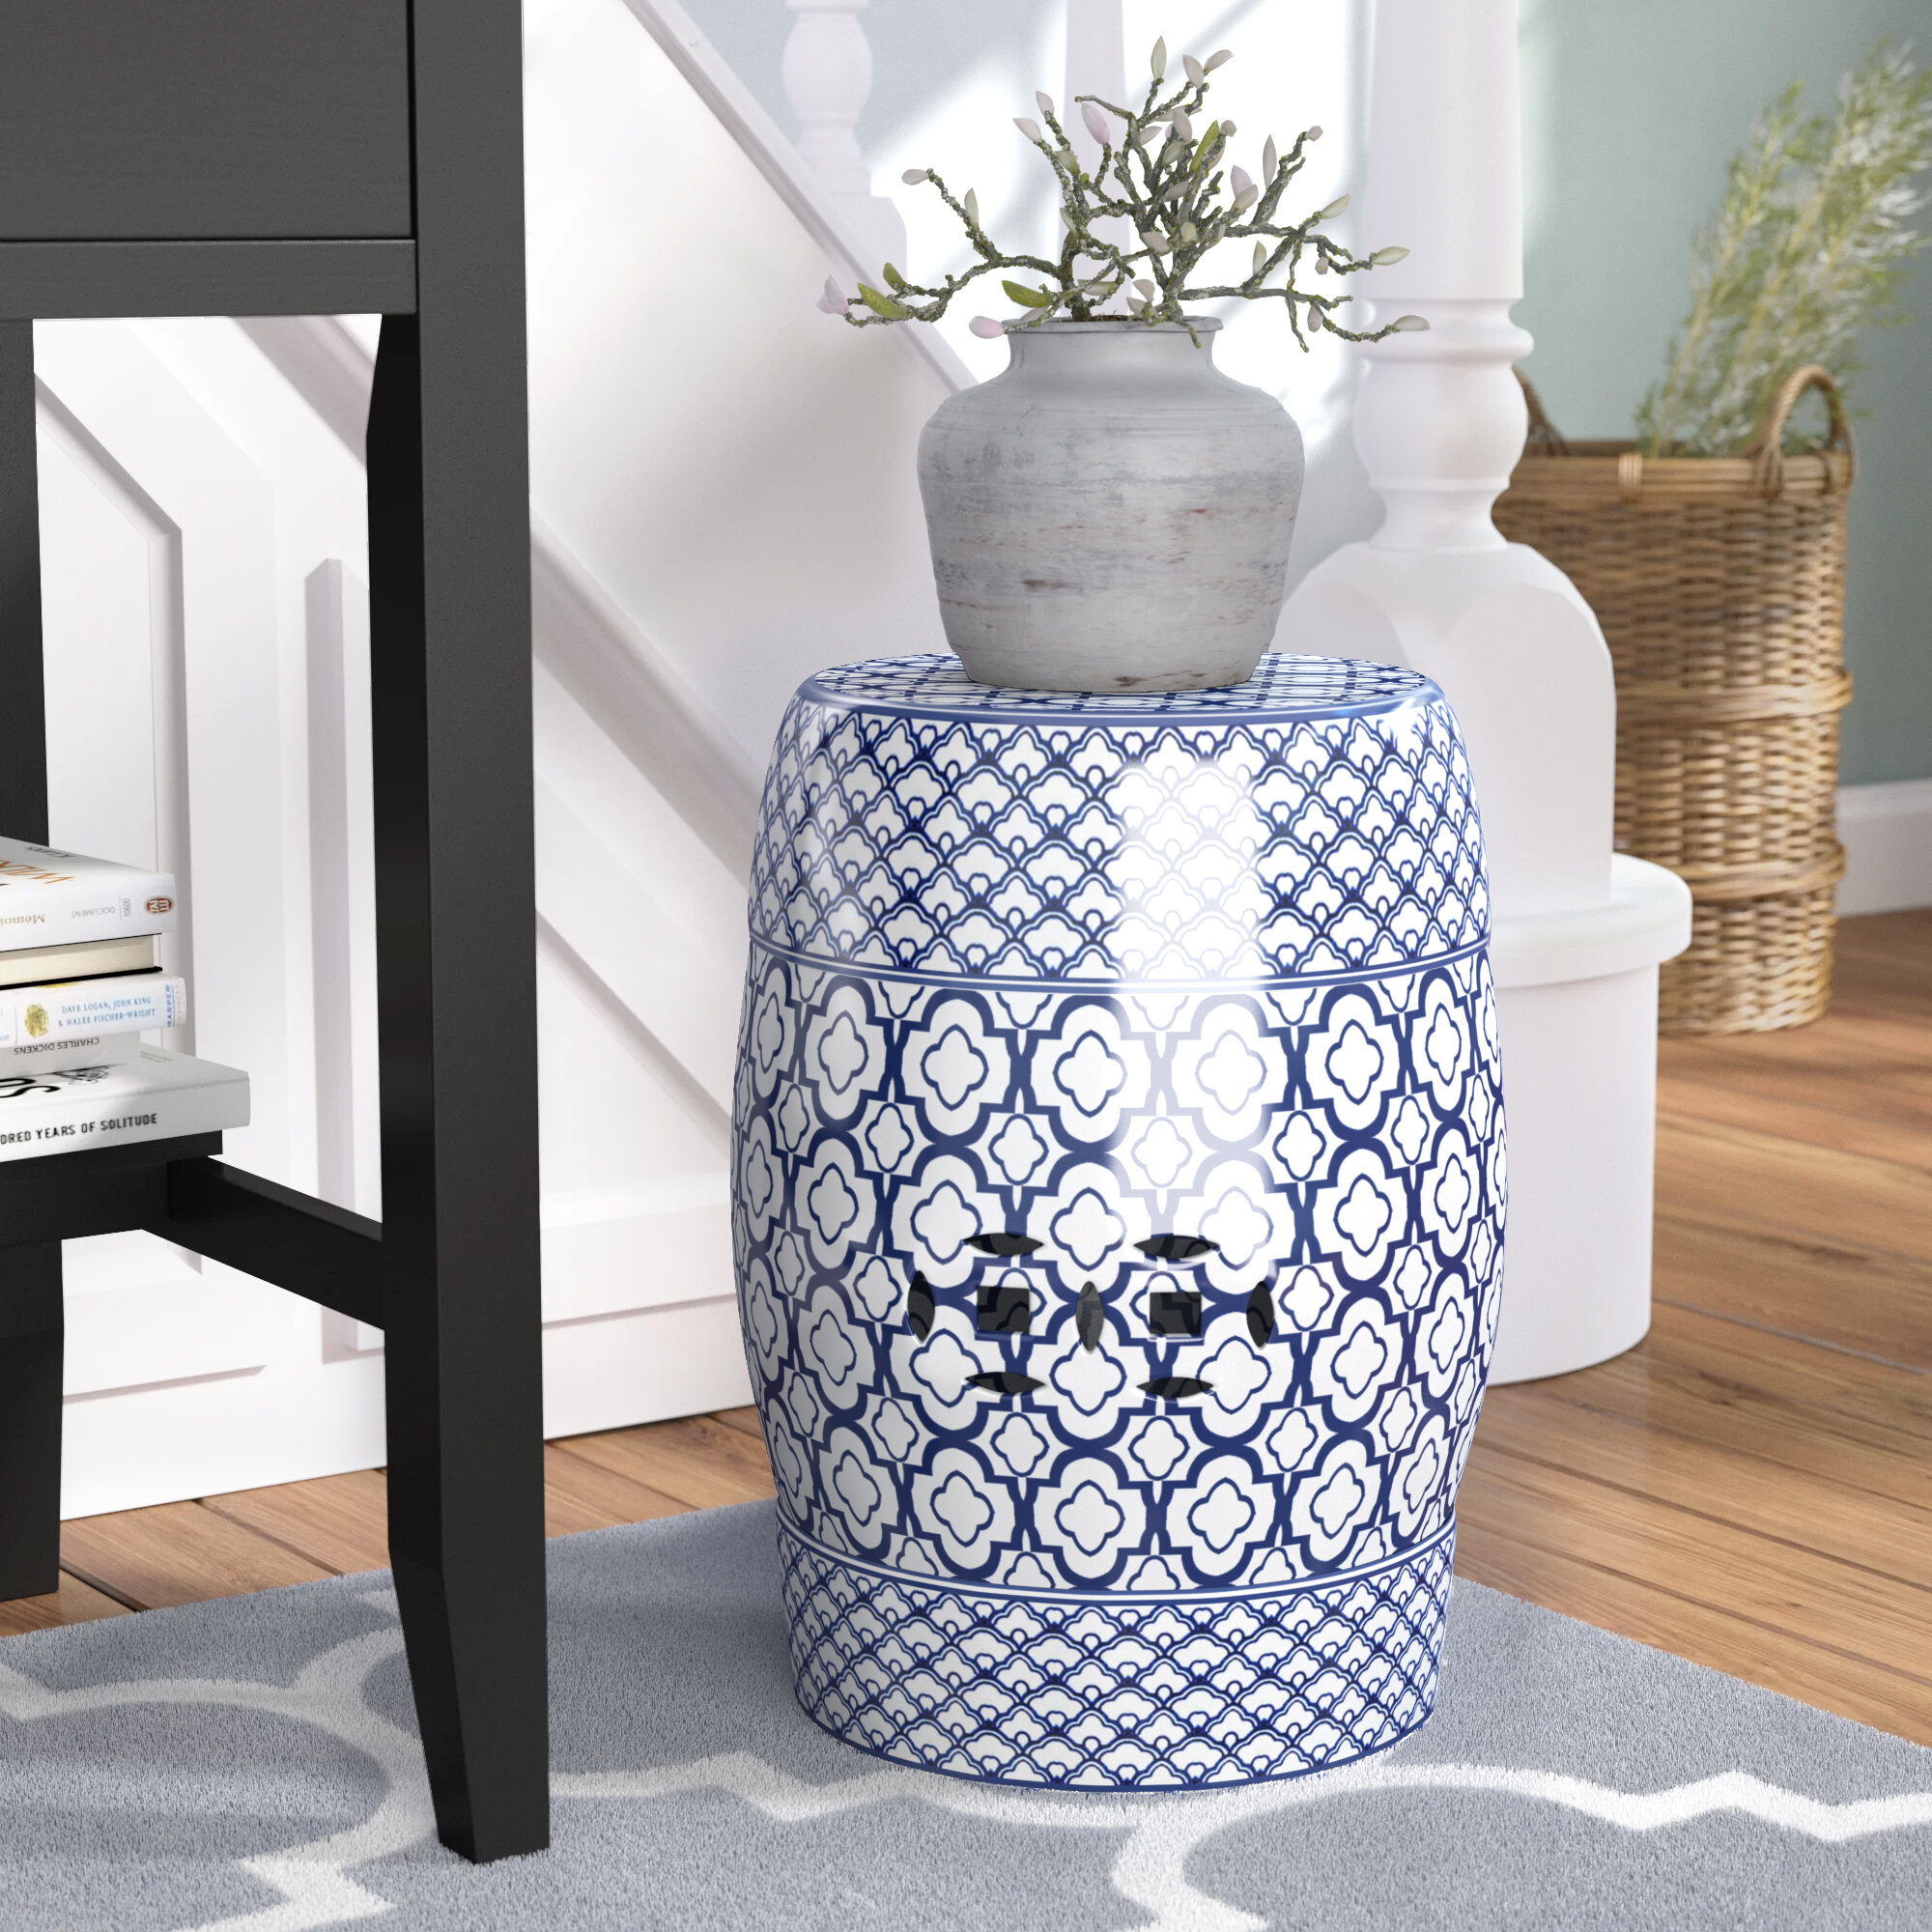 Blue Ceramic Garden Stools You'Ll Love In 2020 | Wayfair Pertaining To Feliciana Ceramic Garden Stools (View 19 of 25)